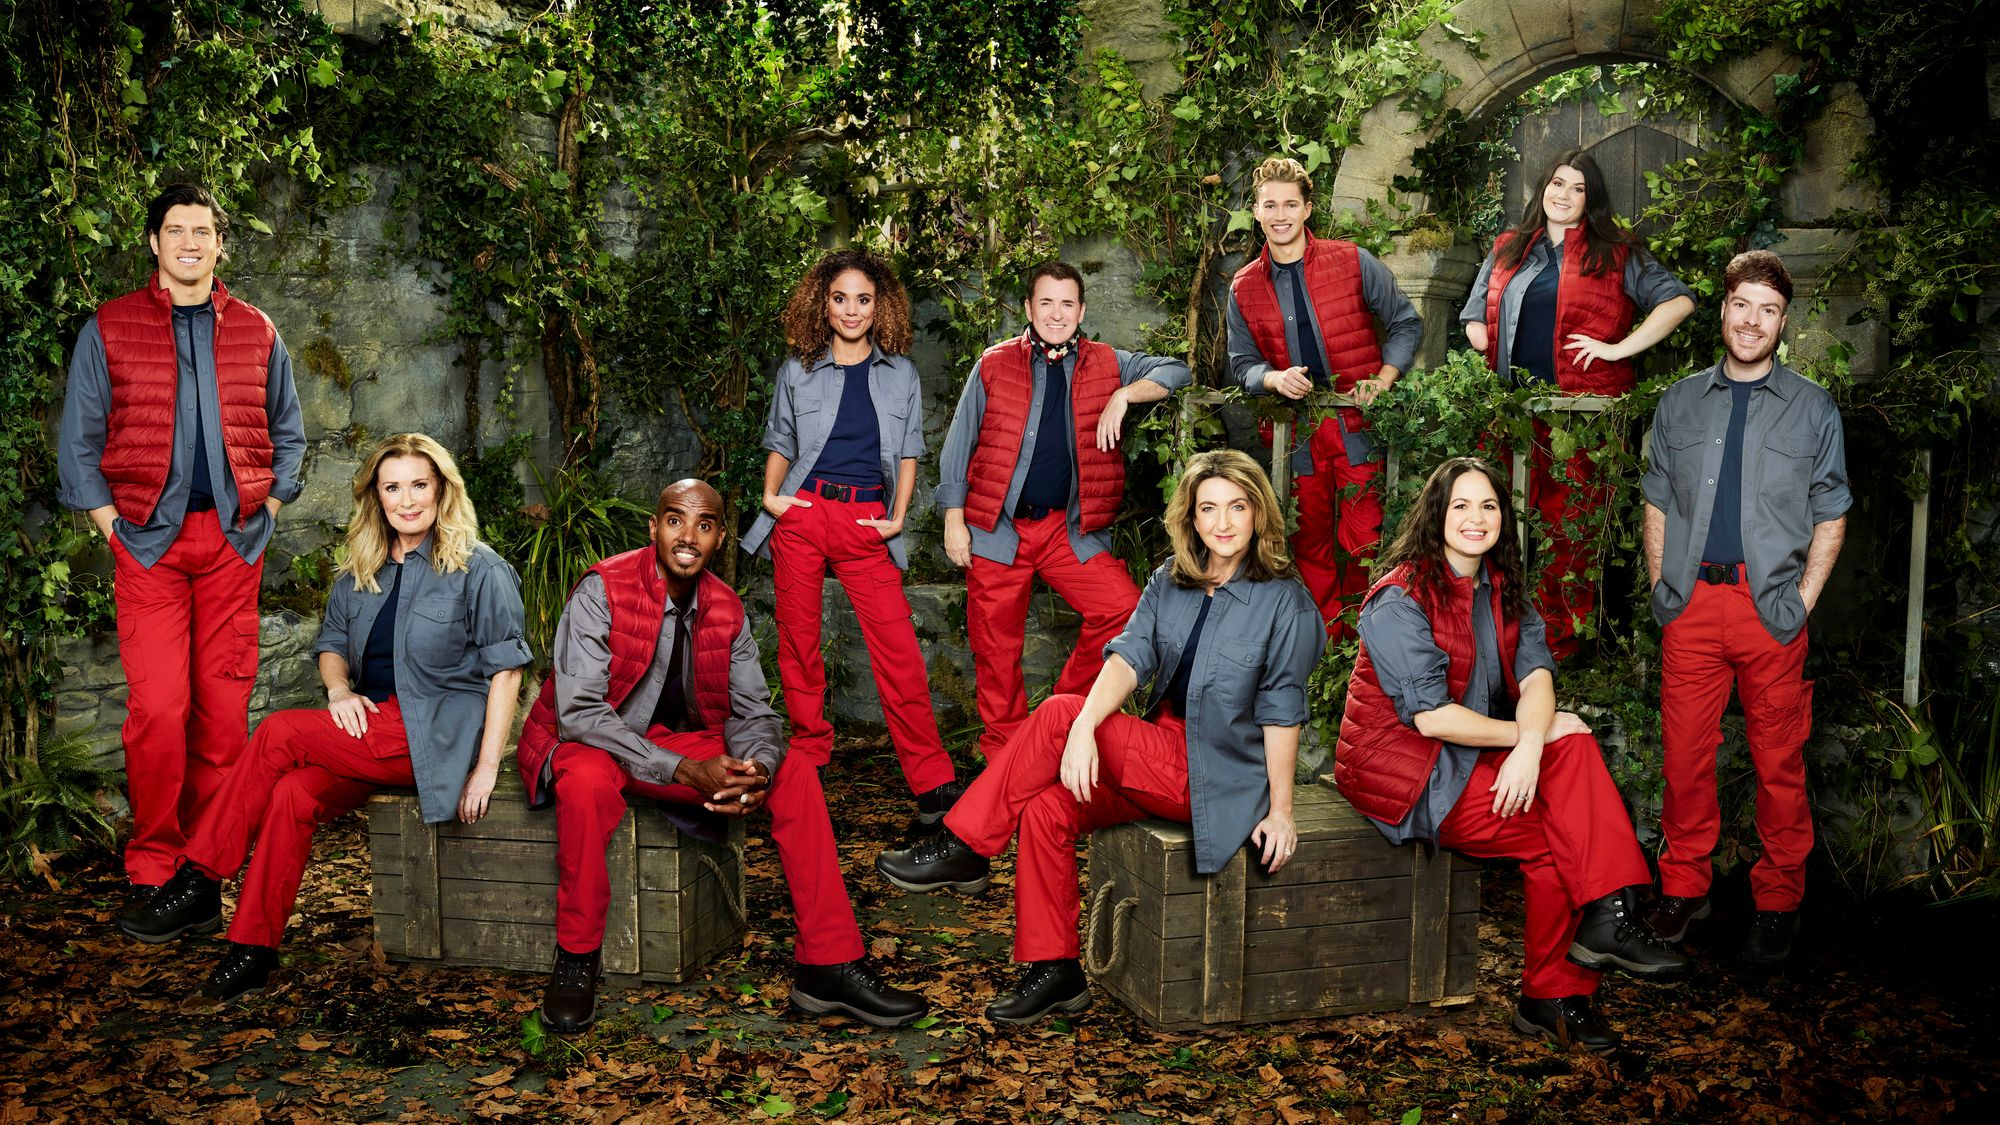 I'm A Celebrity 2020 launches with a peak of 12 million viewers